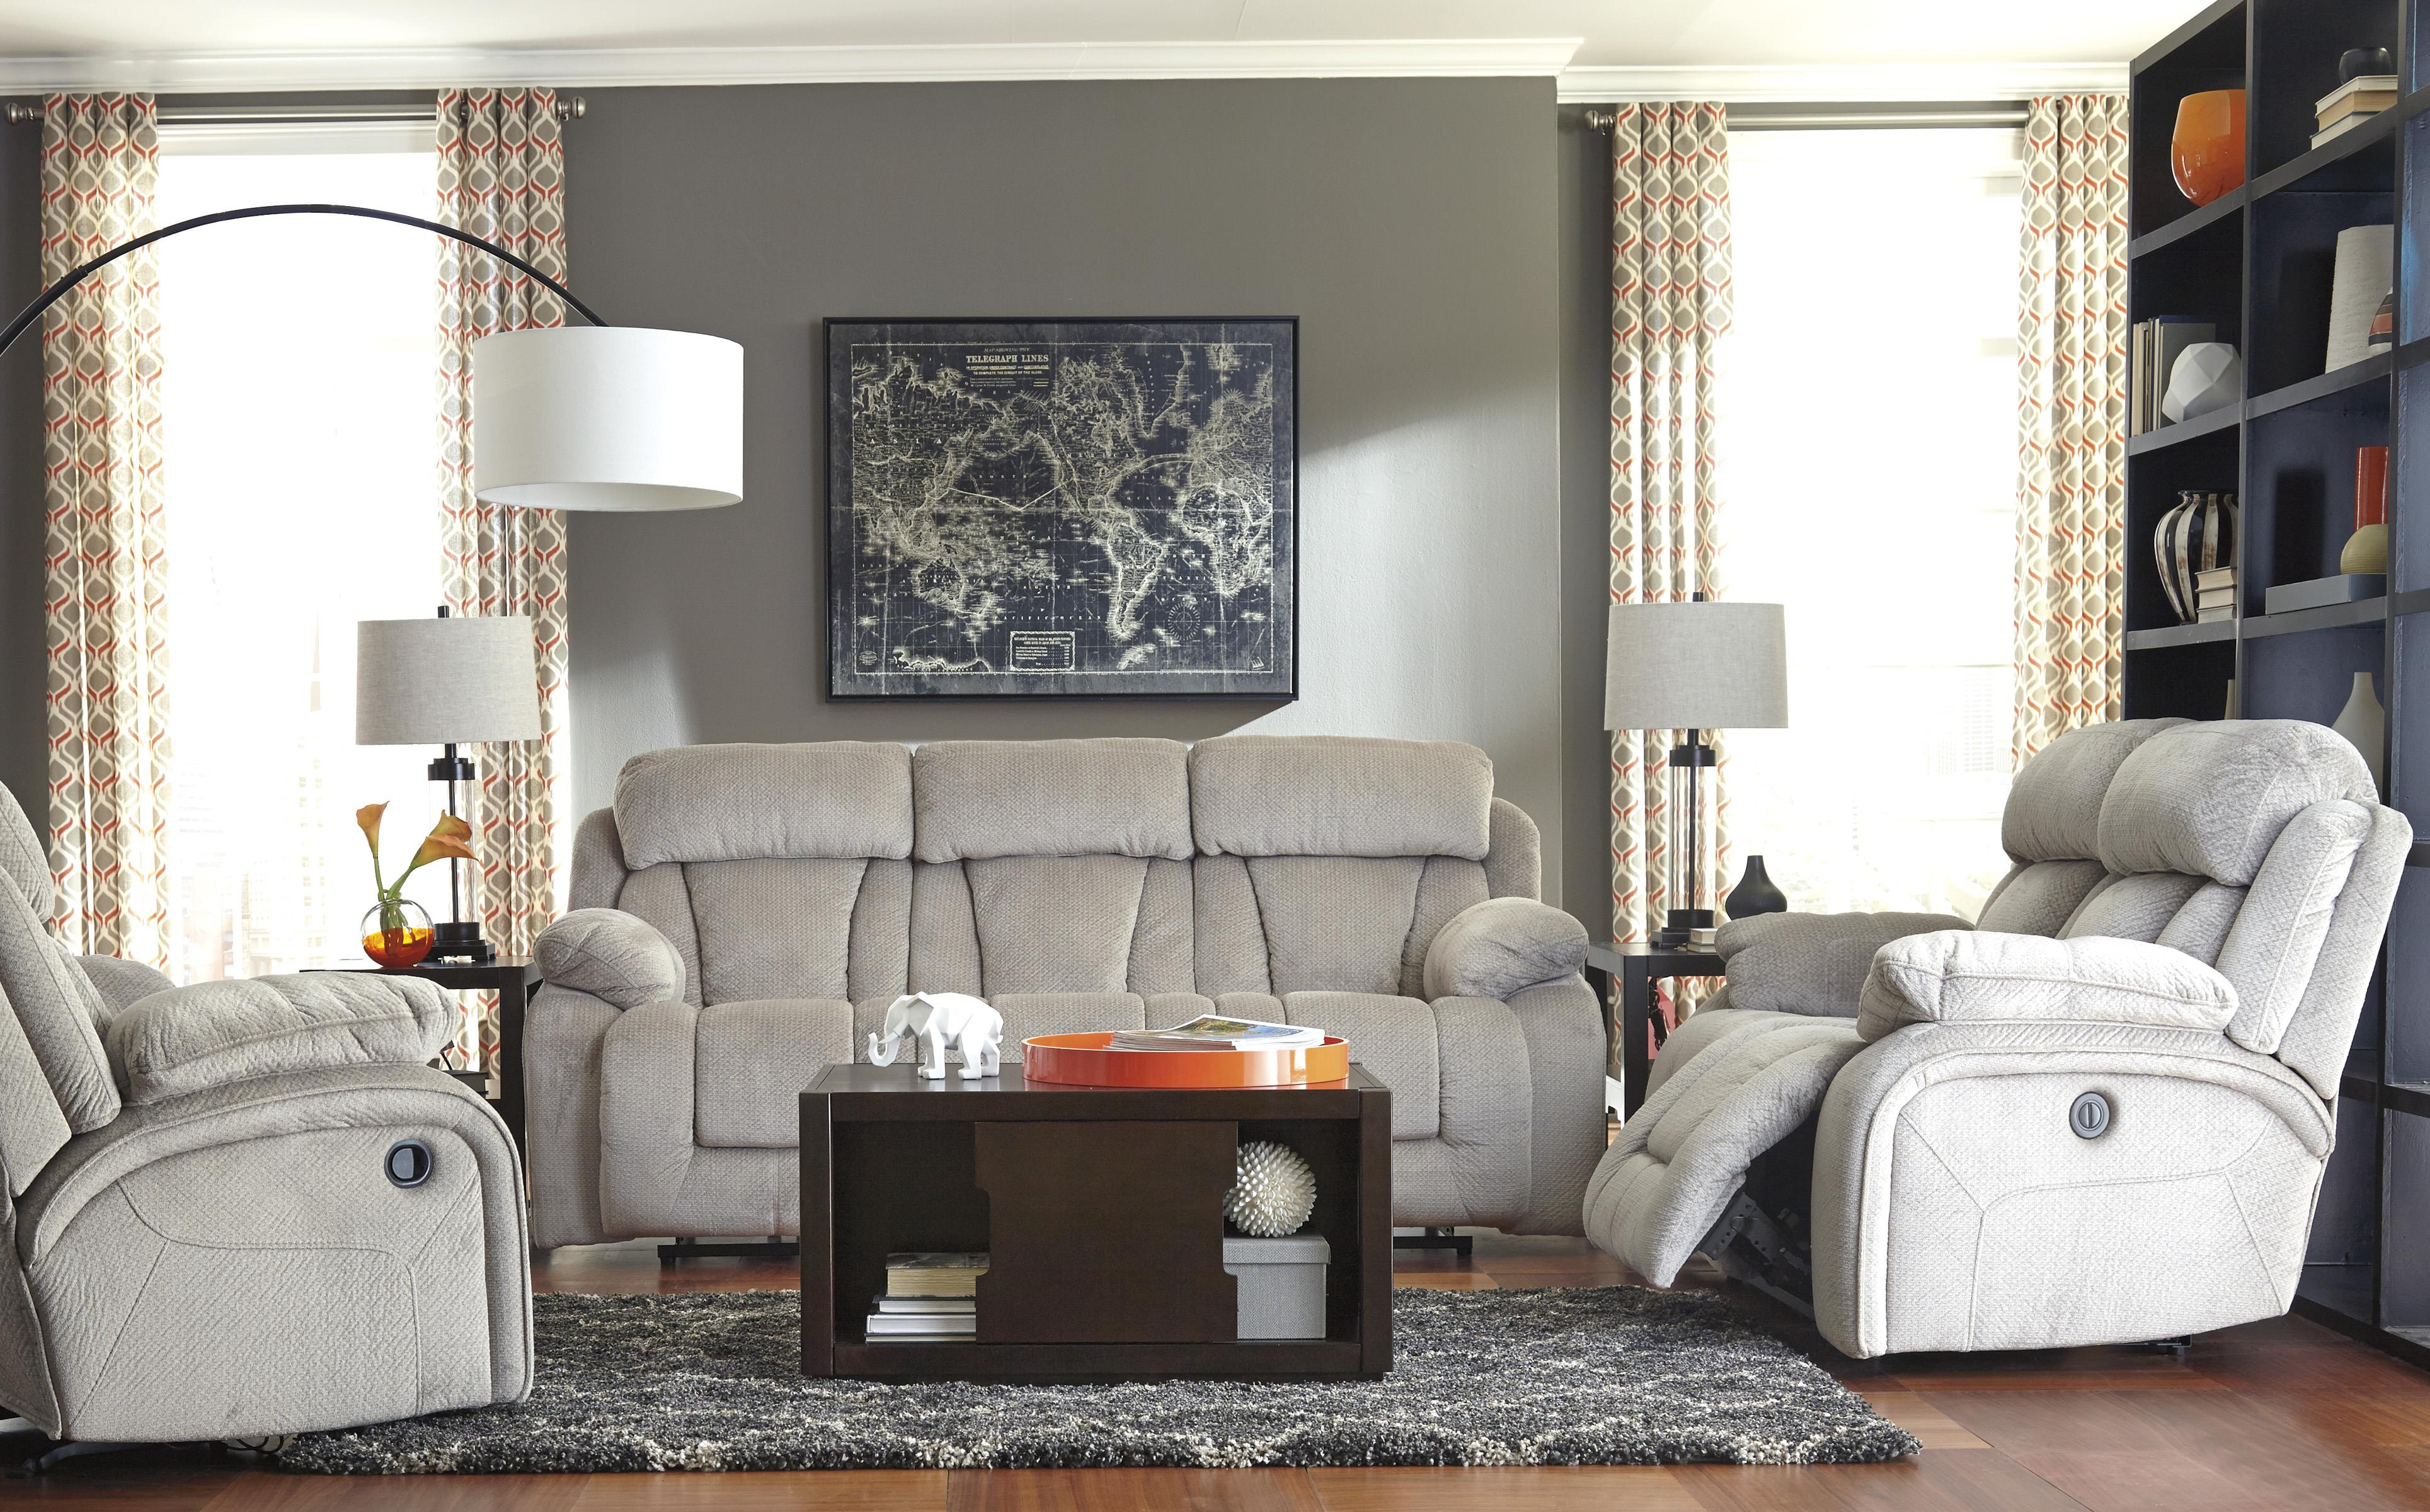 Signature Design by Ashley Stricklin Reclining Living Room Group - Item Number: 86504 Living Room Group 3